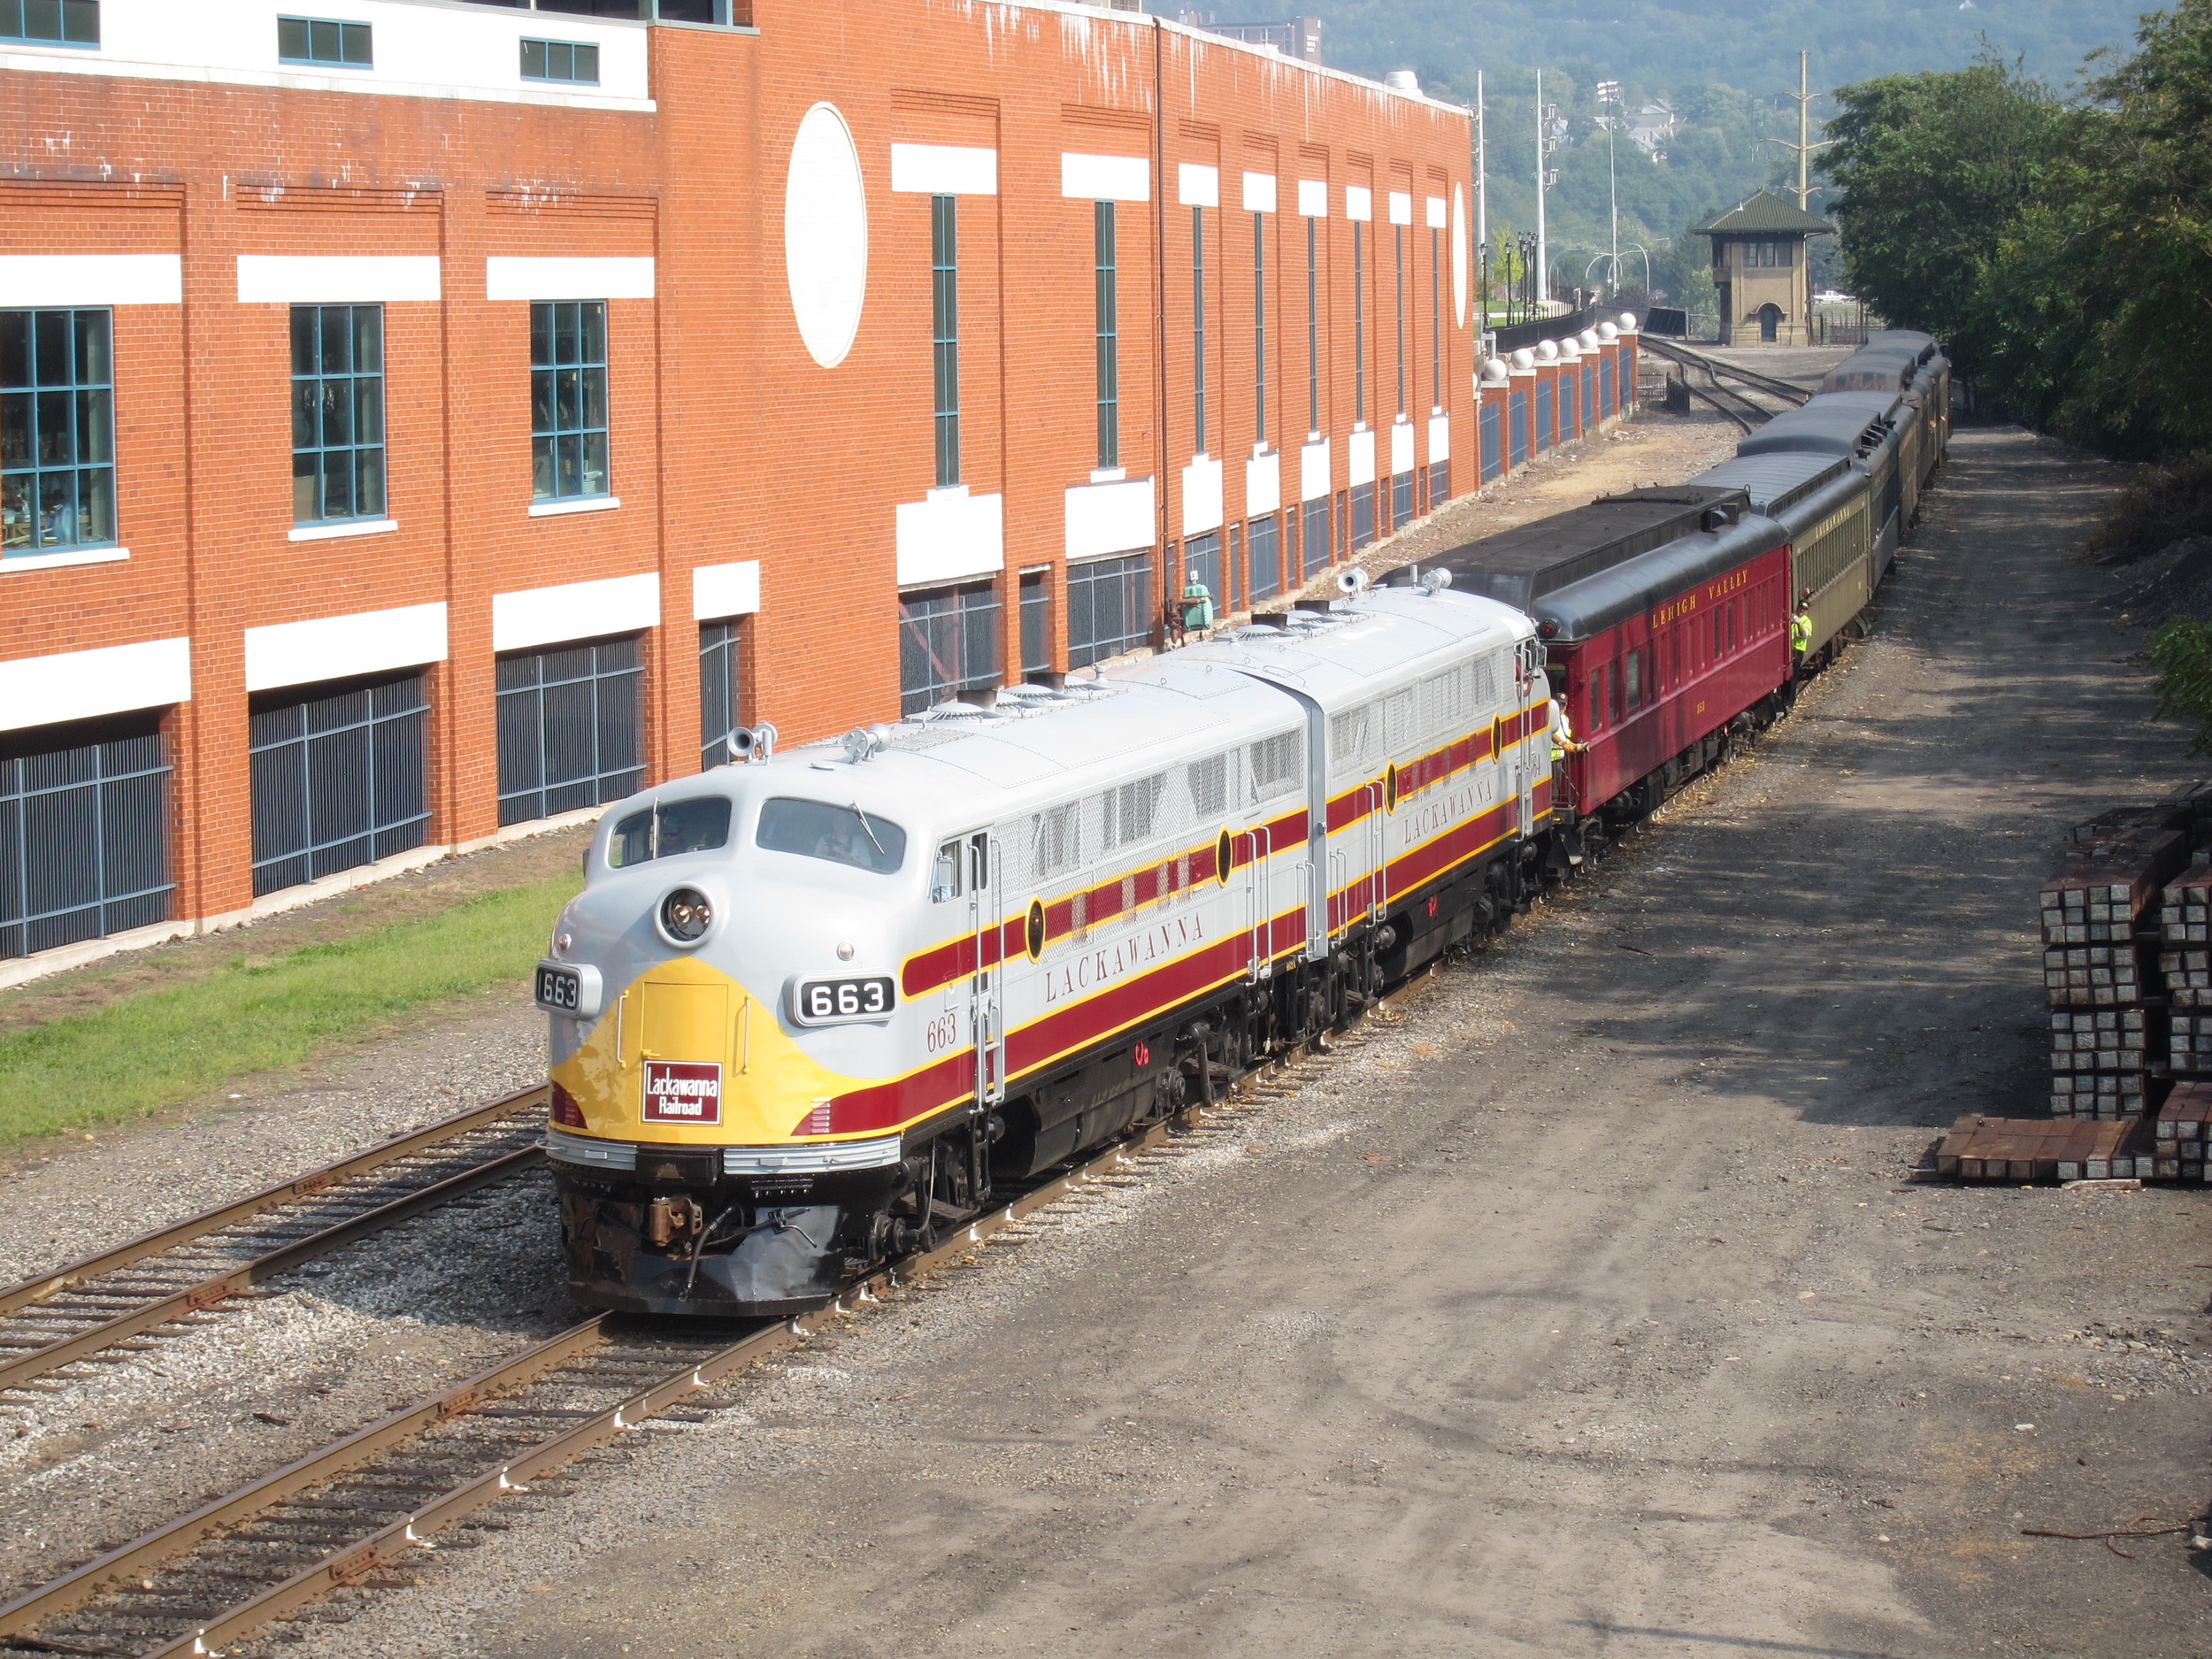 DL&W No. 663 leads a Steamtown excursion back into the park in Scranton on September 3, 2011. (Rudy Garbely photo)